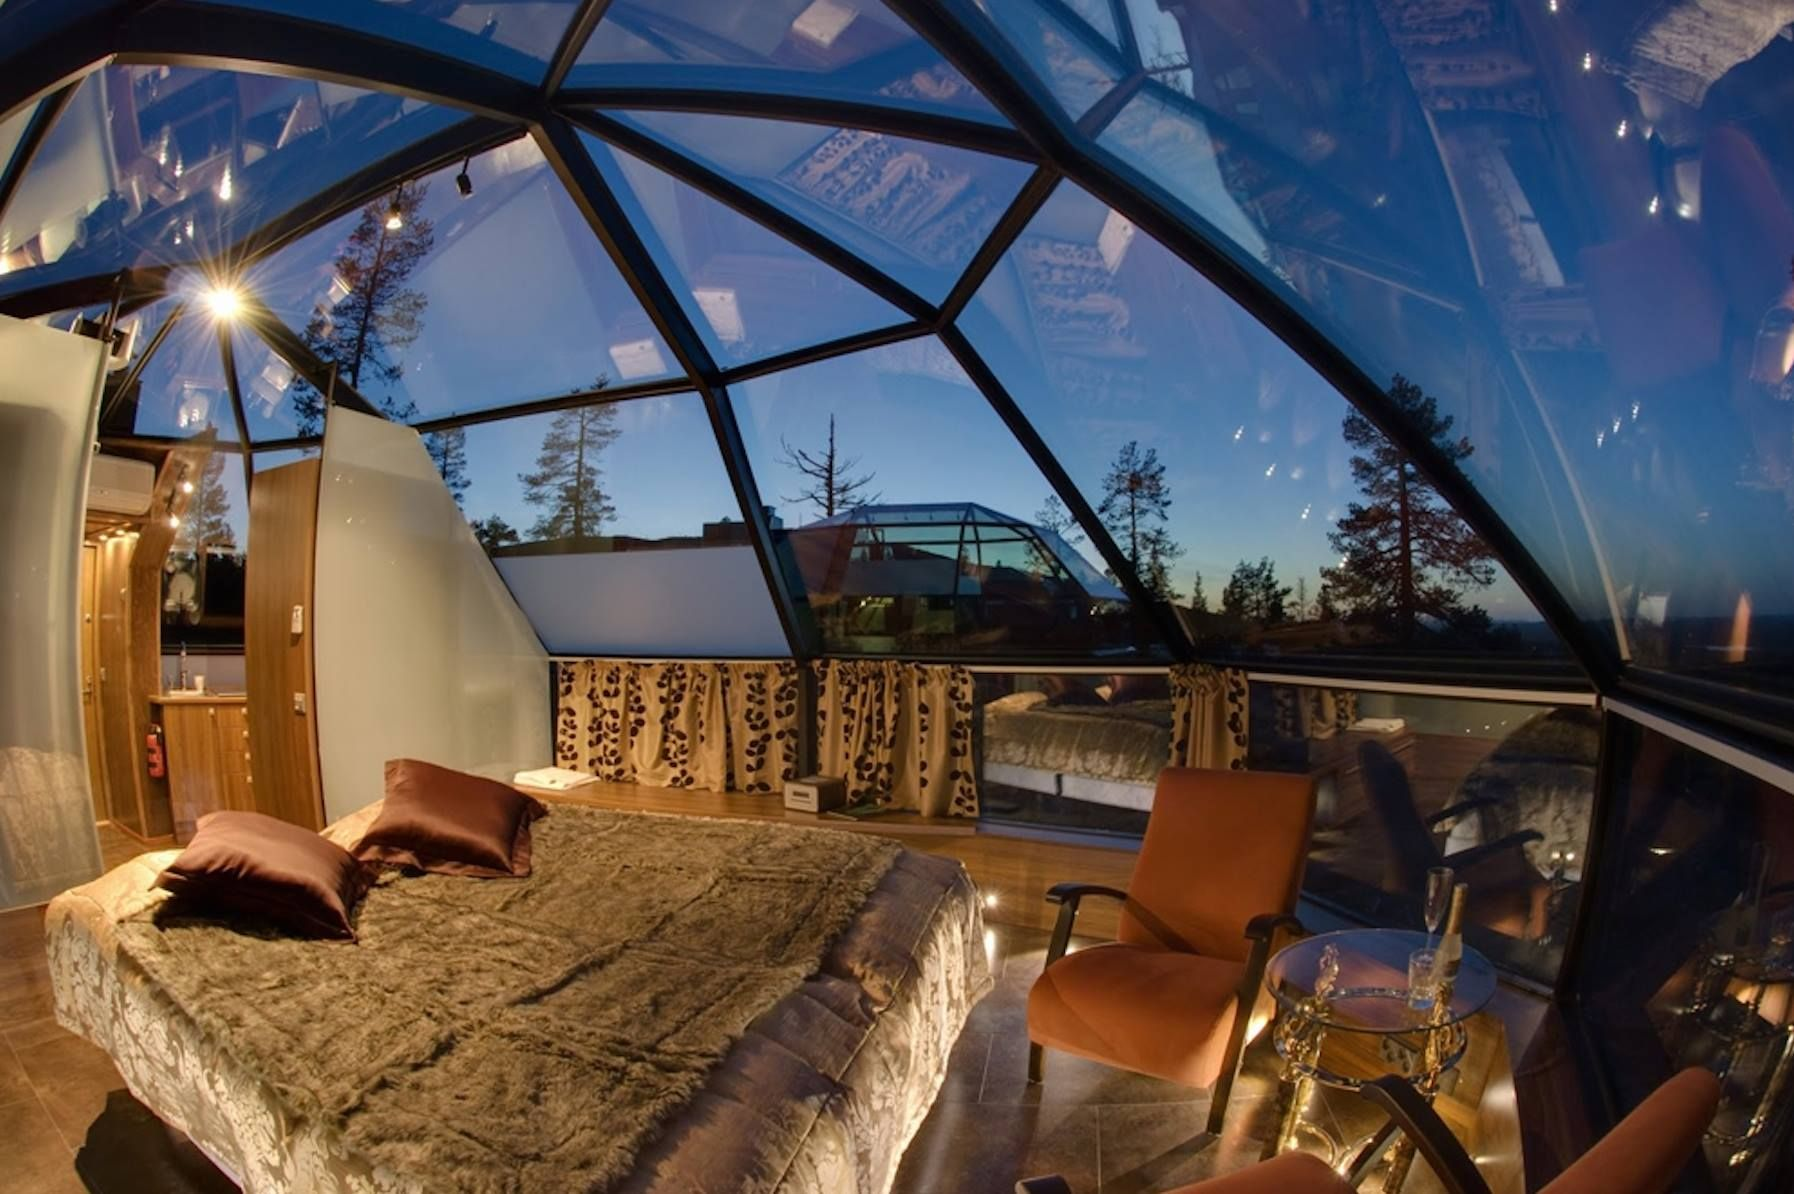 To live a new amazing #experience in #Lapland at the @HotelKakslauttanen Igloo Resort #Finland #traveltheworld #amazingplace  www.lecollectionist.com